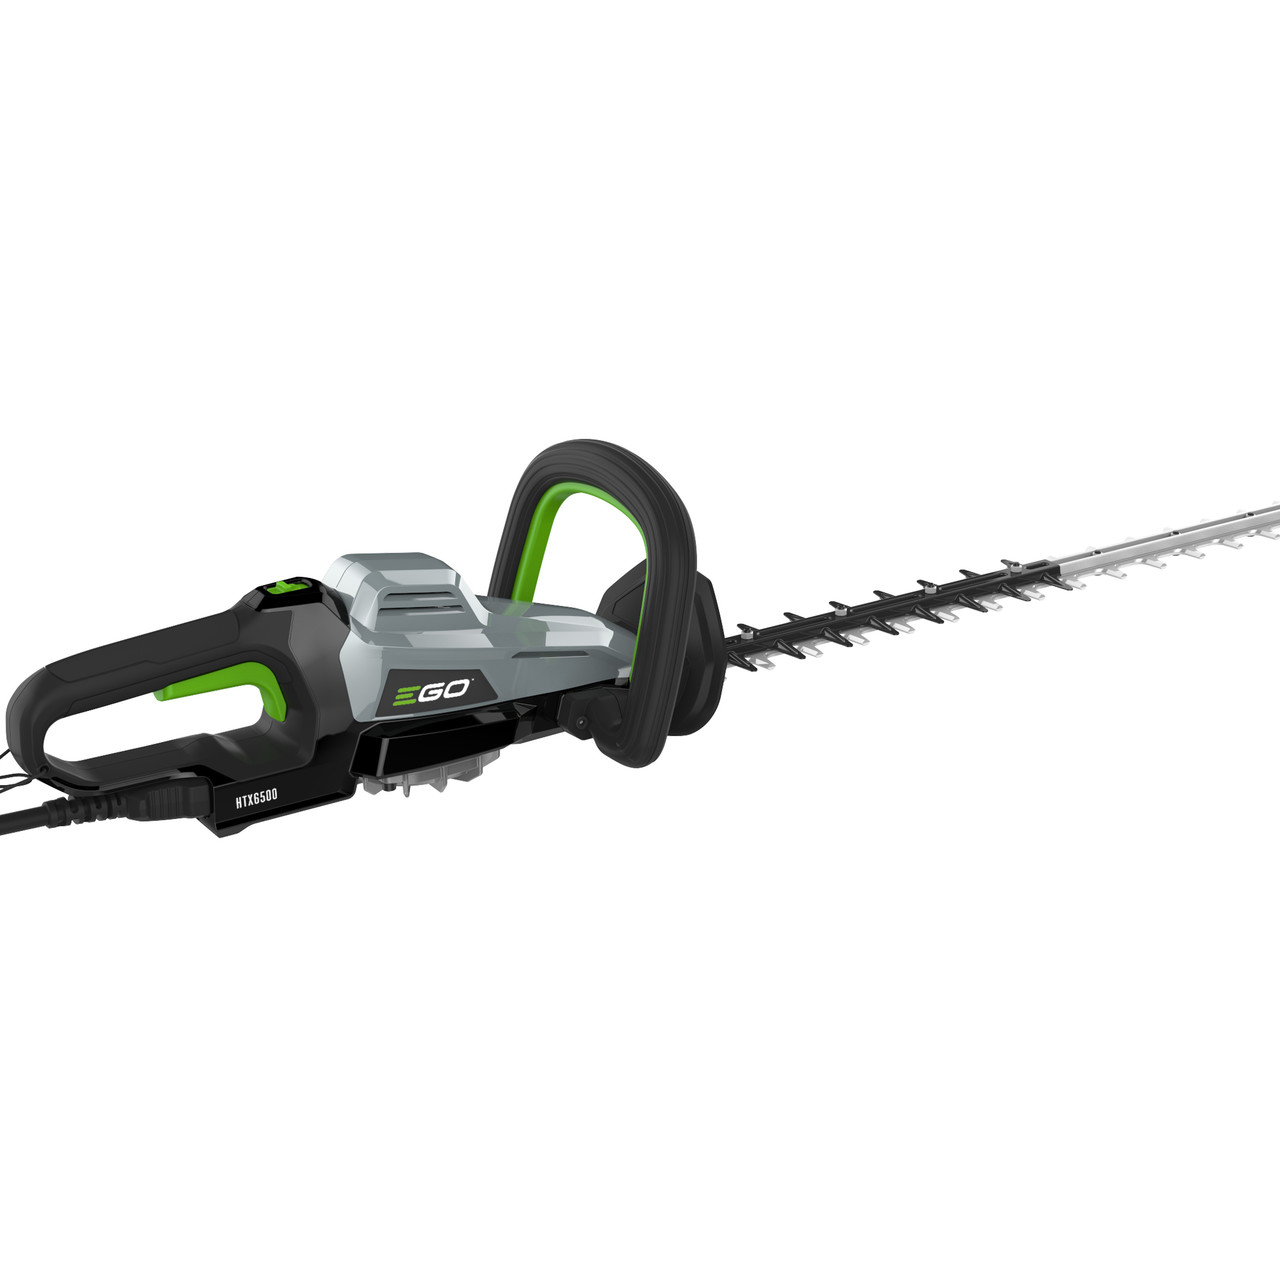 EGO HTX6500 Commercial Hedge Trimmer ( shell only )